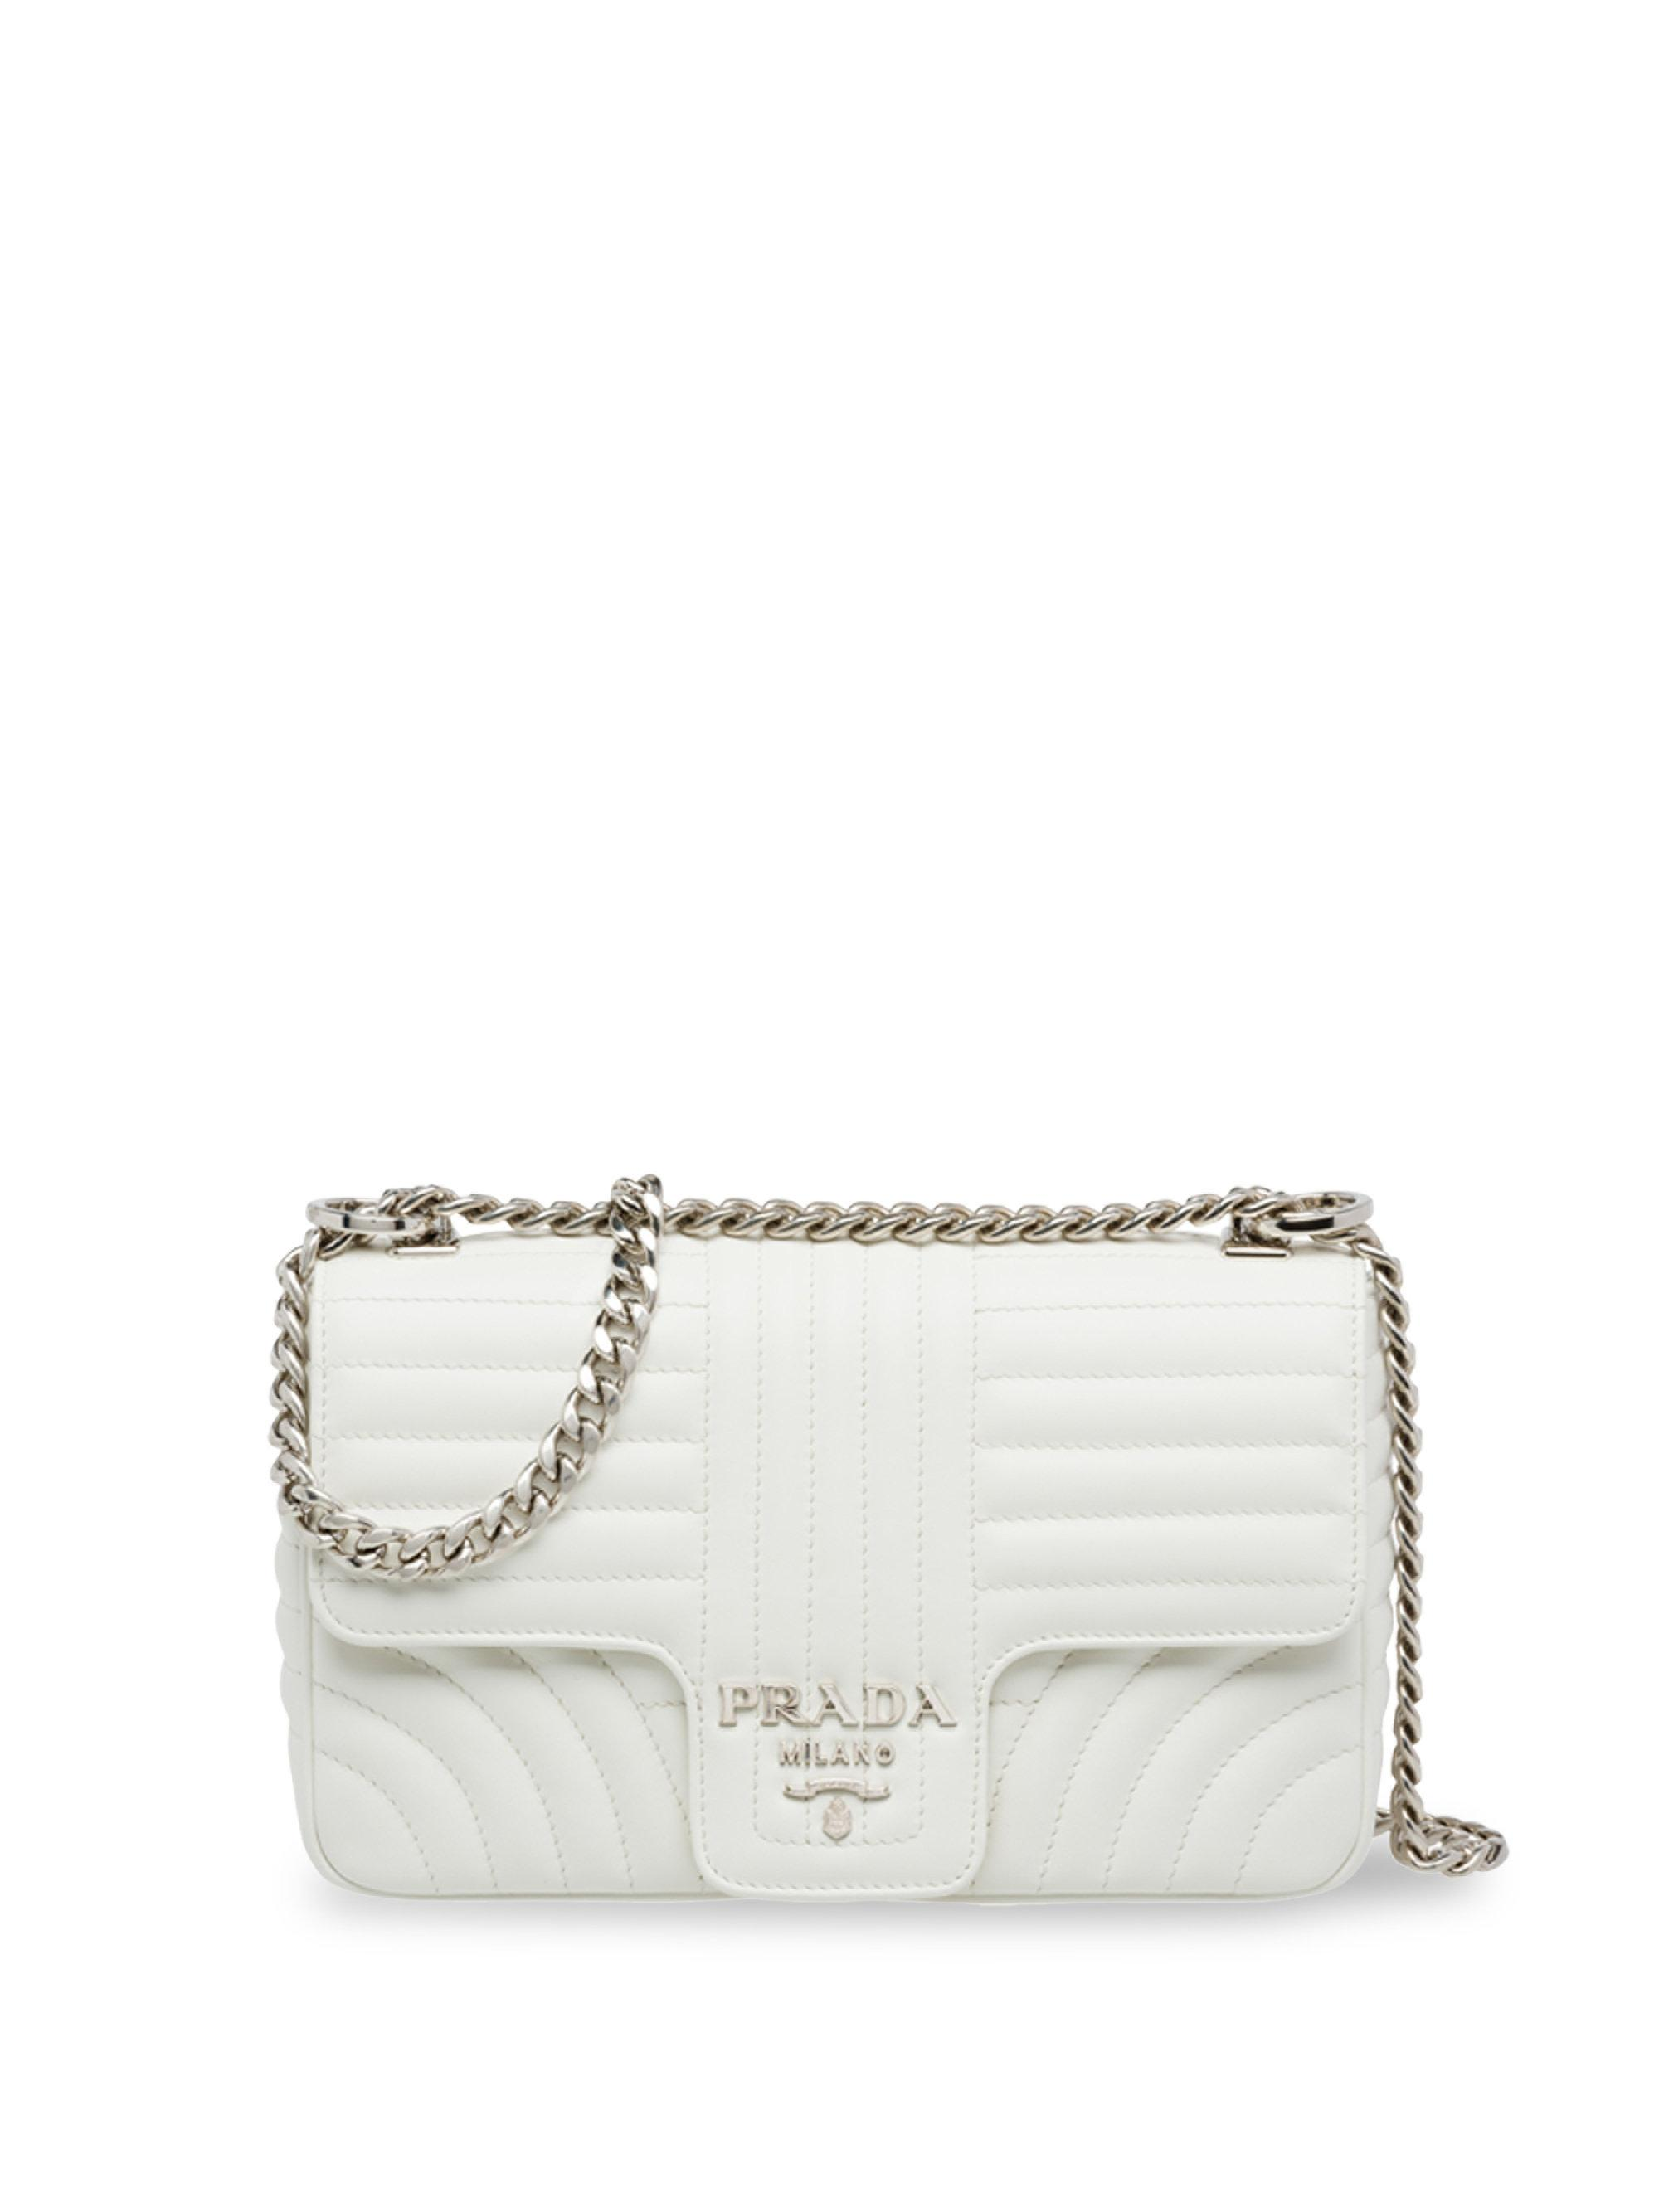 c6667da2ce63 Prada Large Quilted Shoulder Bag in White - Lyst